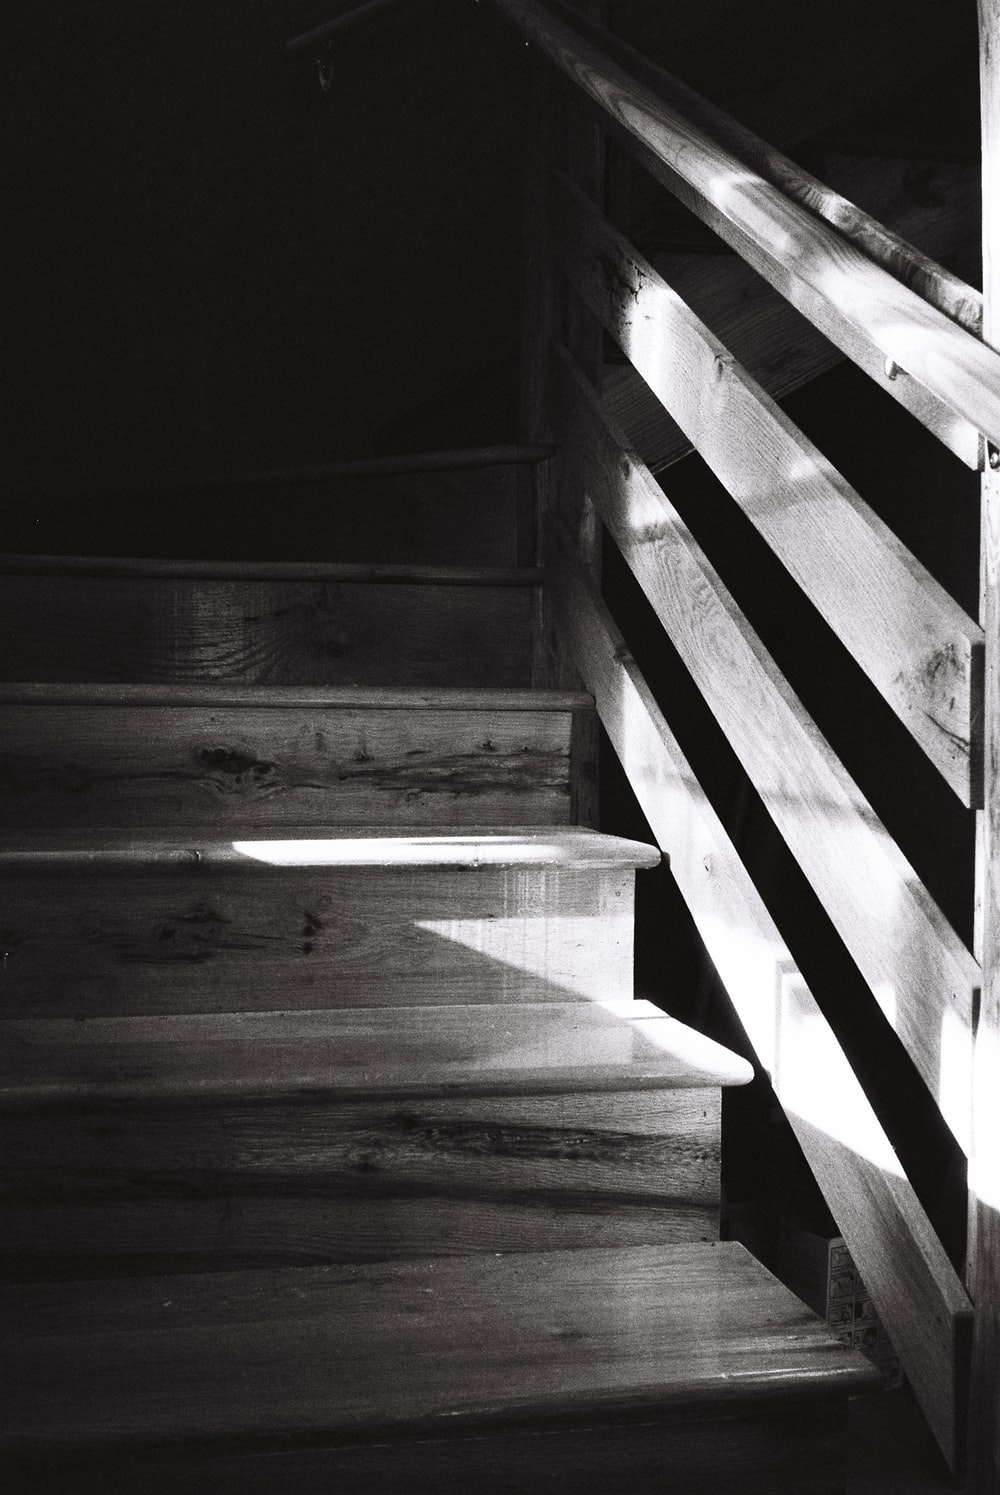 grayscale photo of concrete staircase